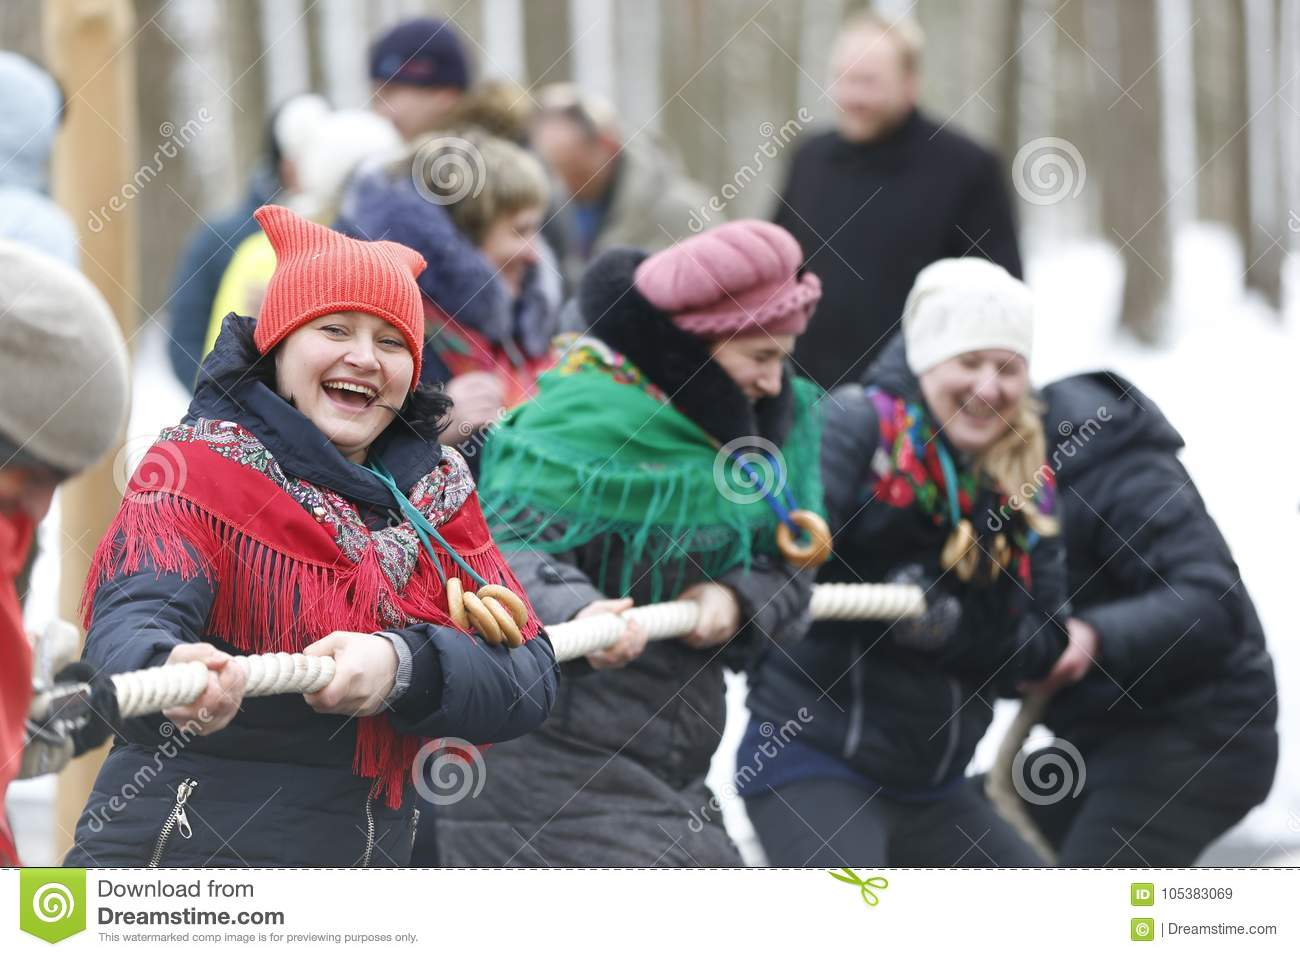 Russian national holiday Maslenitsa.Tighten the rope